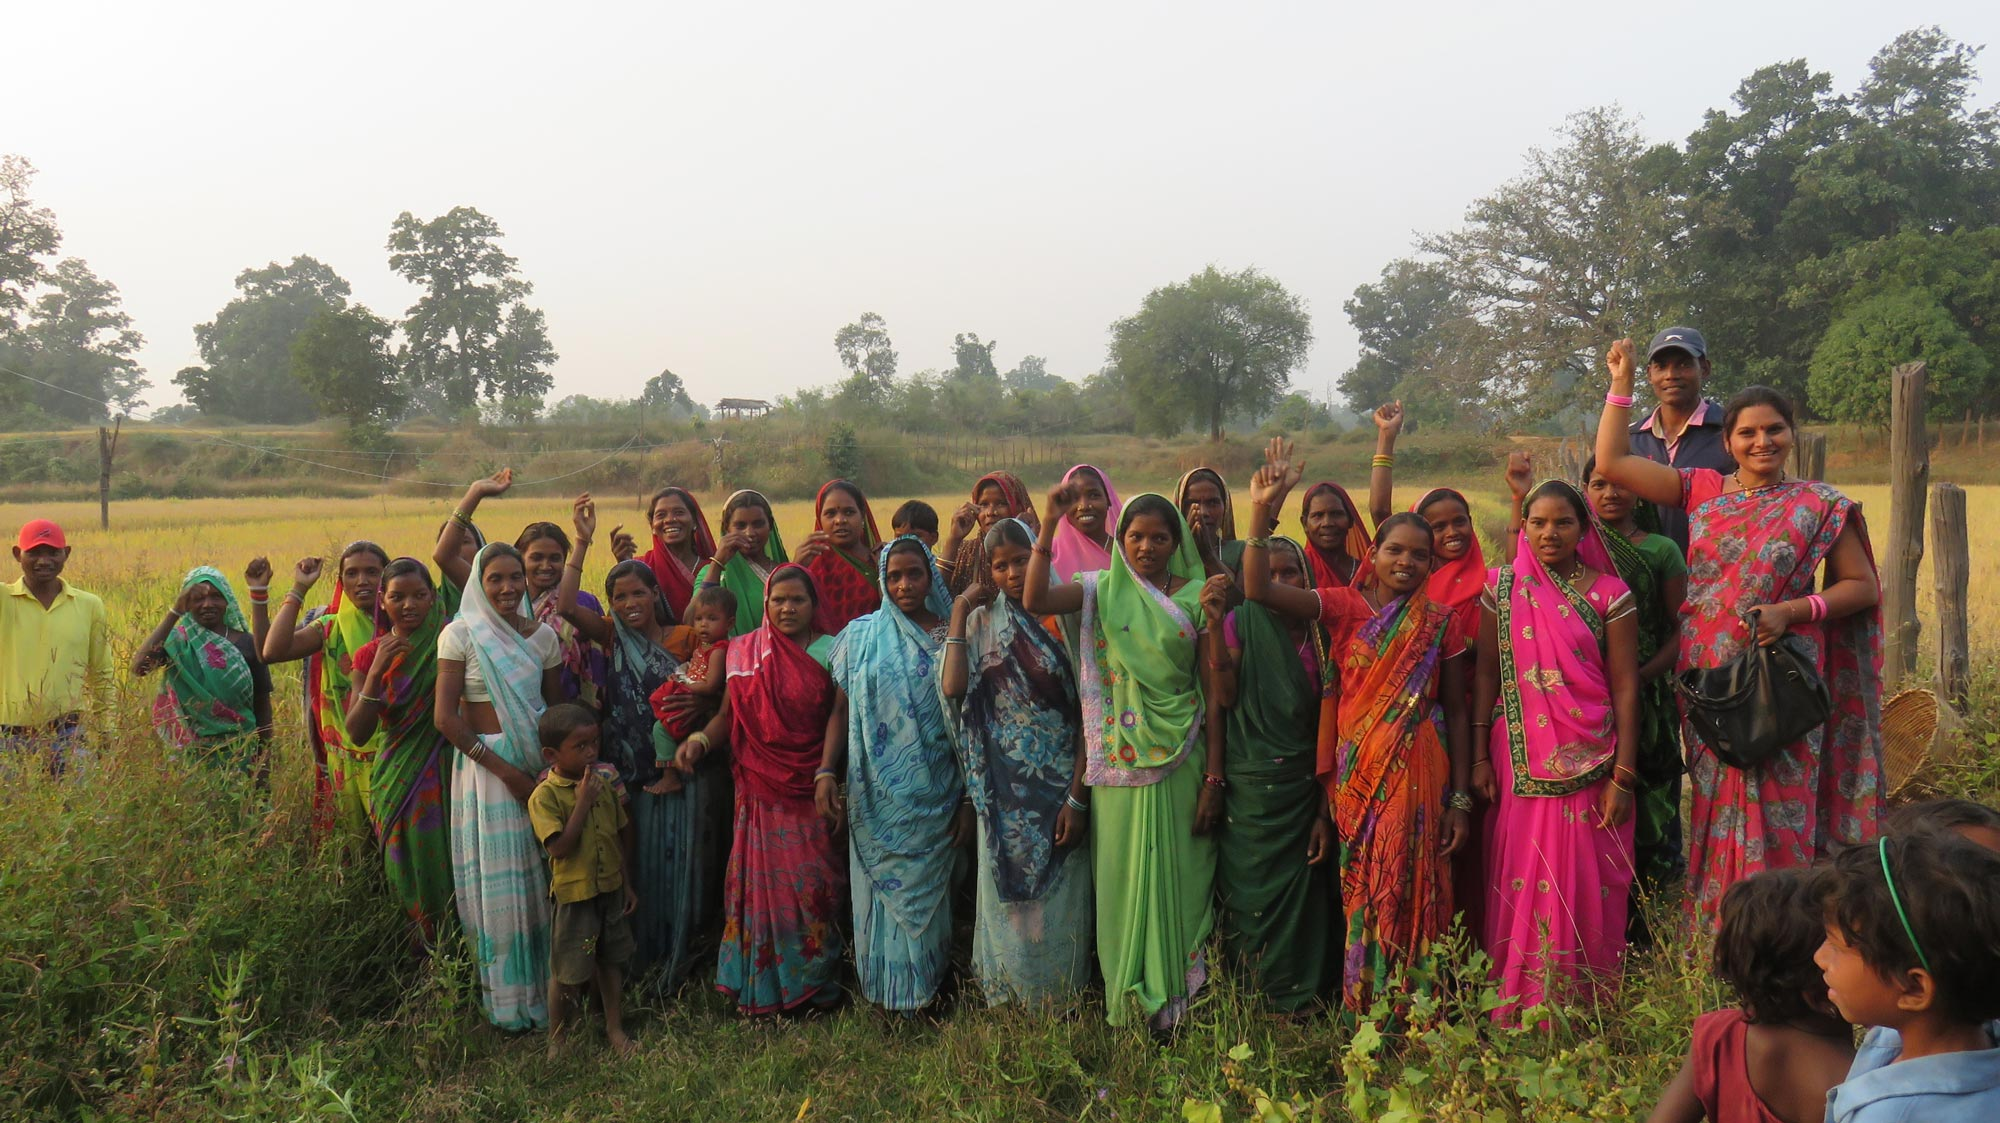 A self-help group in India